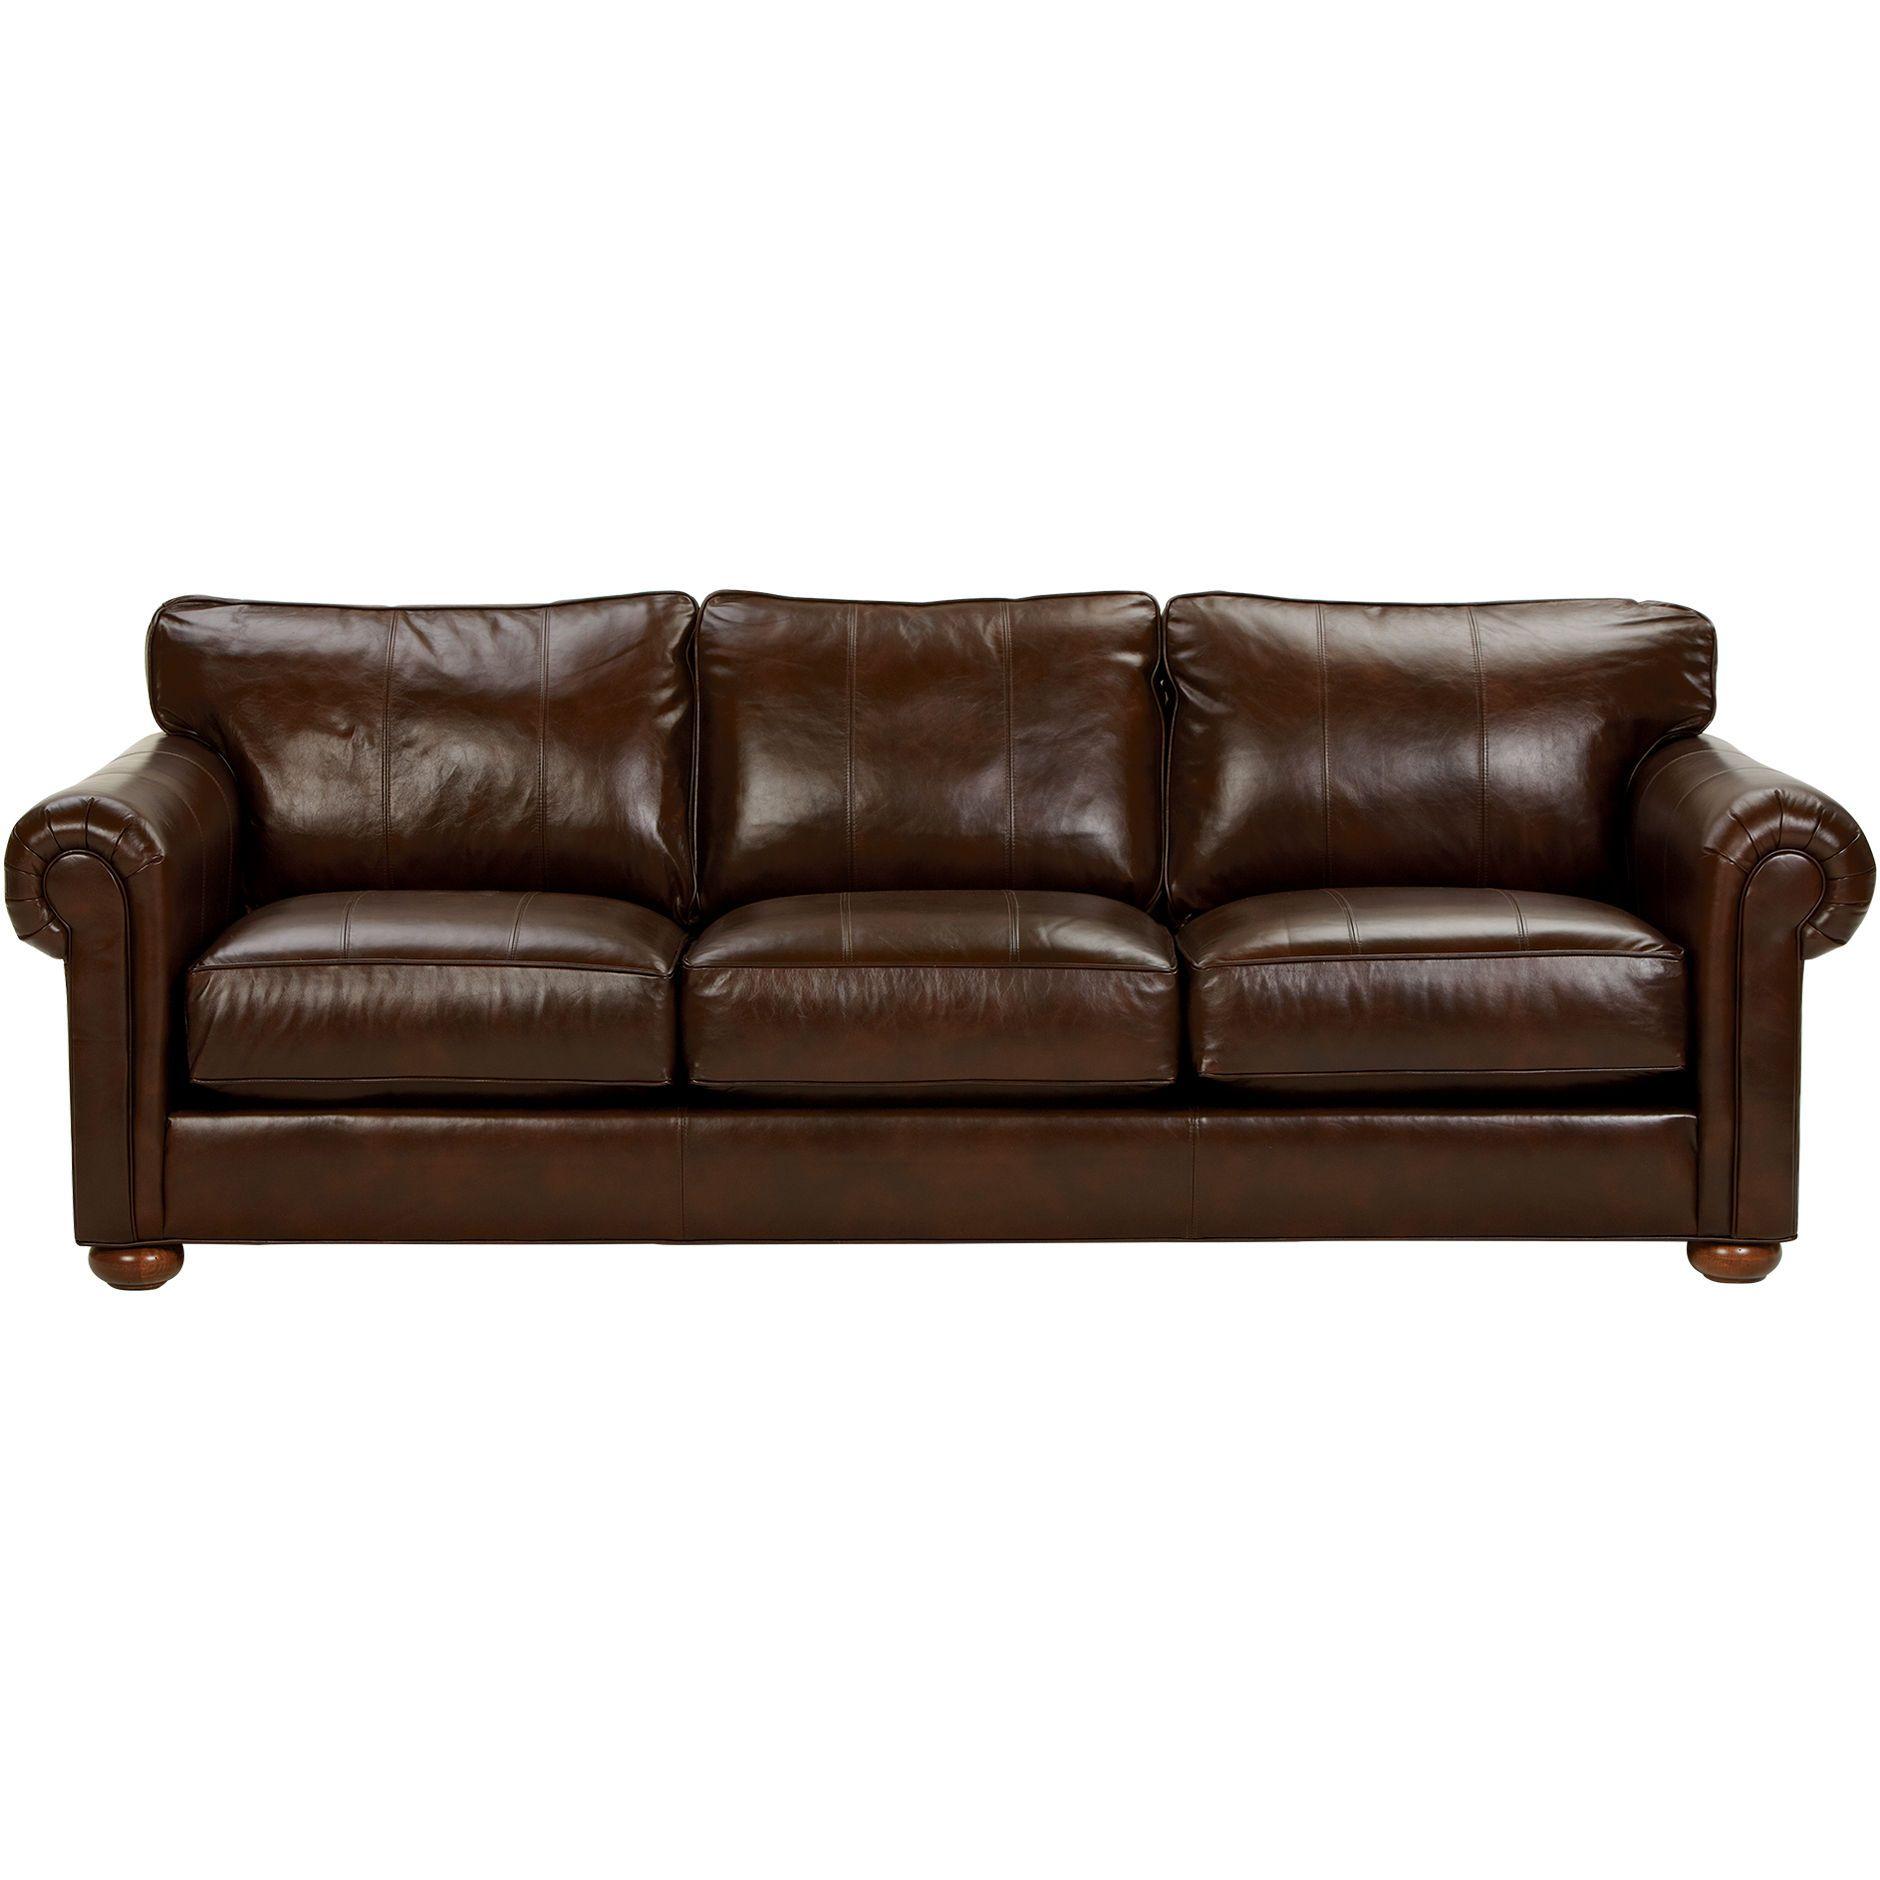 Richmond Leather Sofa Old English Chocolate Ethan Allen Us Leather Sofa Small Leather Sofa Coastal Living Rooms